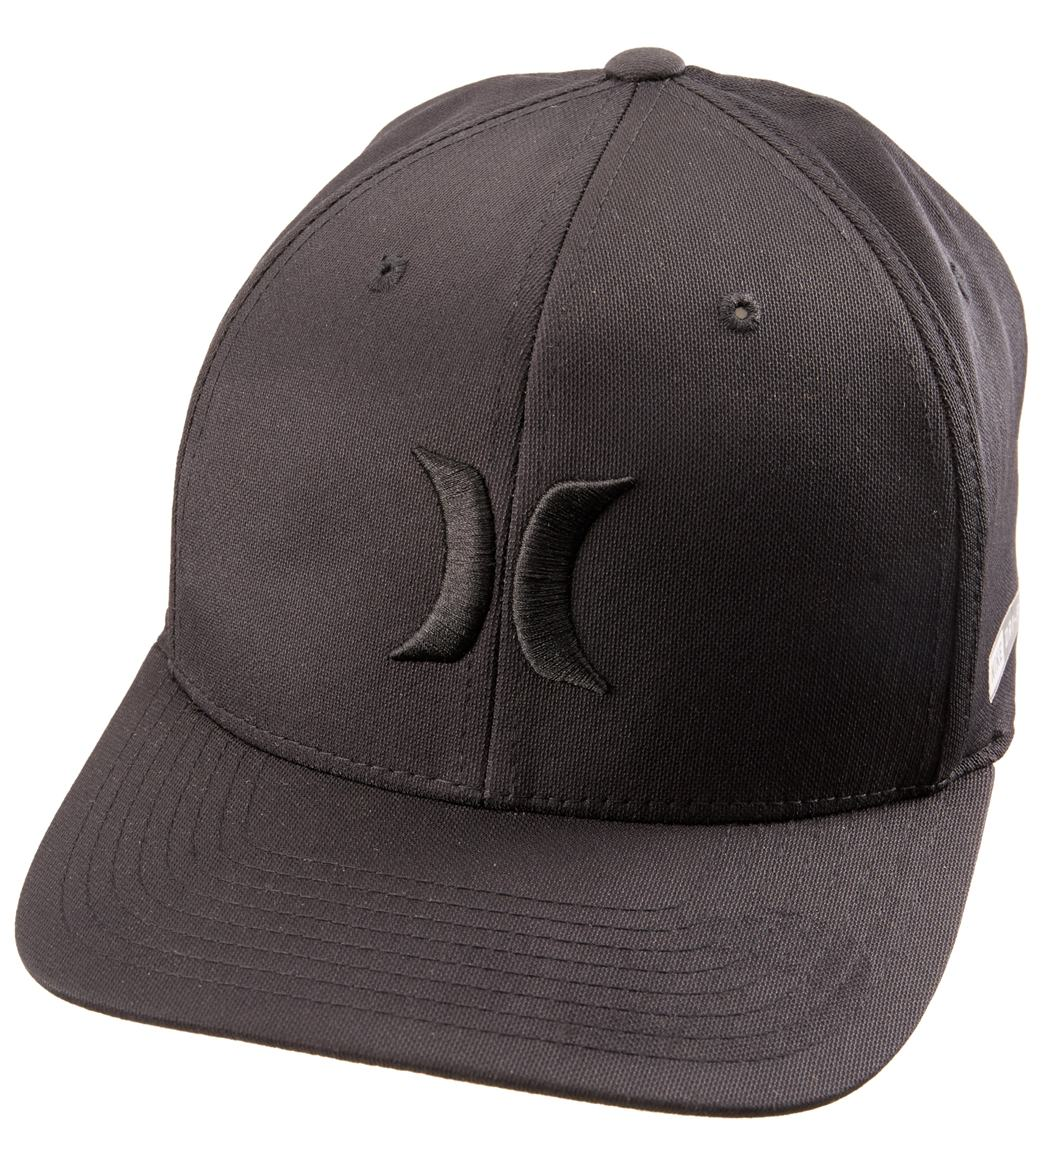 eca5f397df8 Hurley Men s Dri-Fit One   Only Hat at SwimOutlet.com